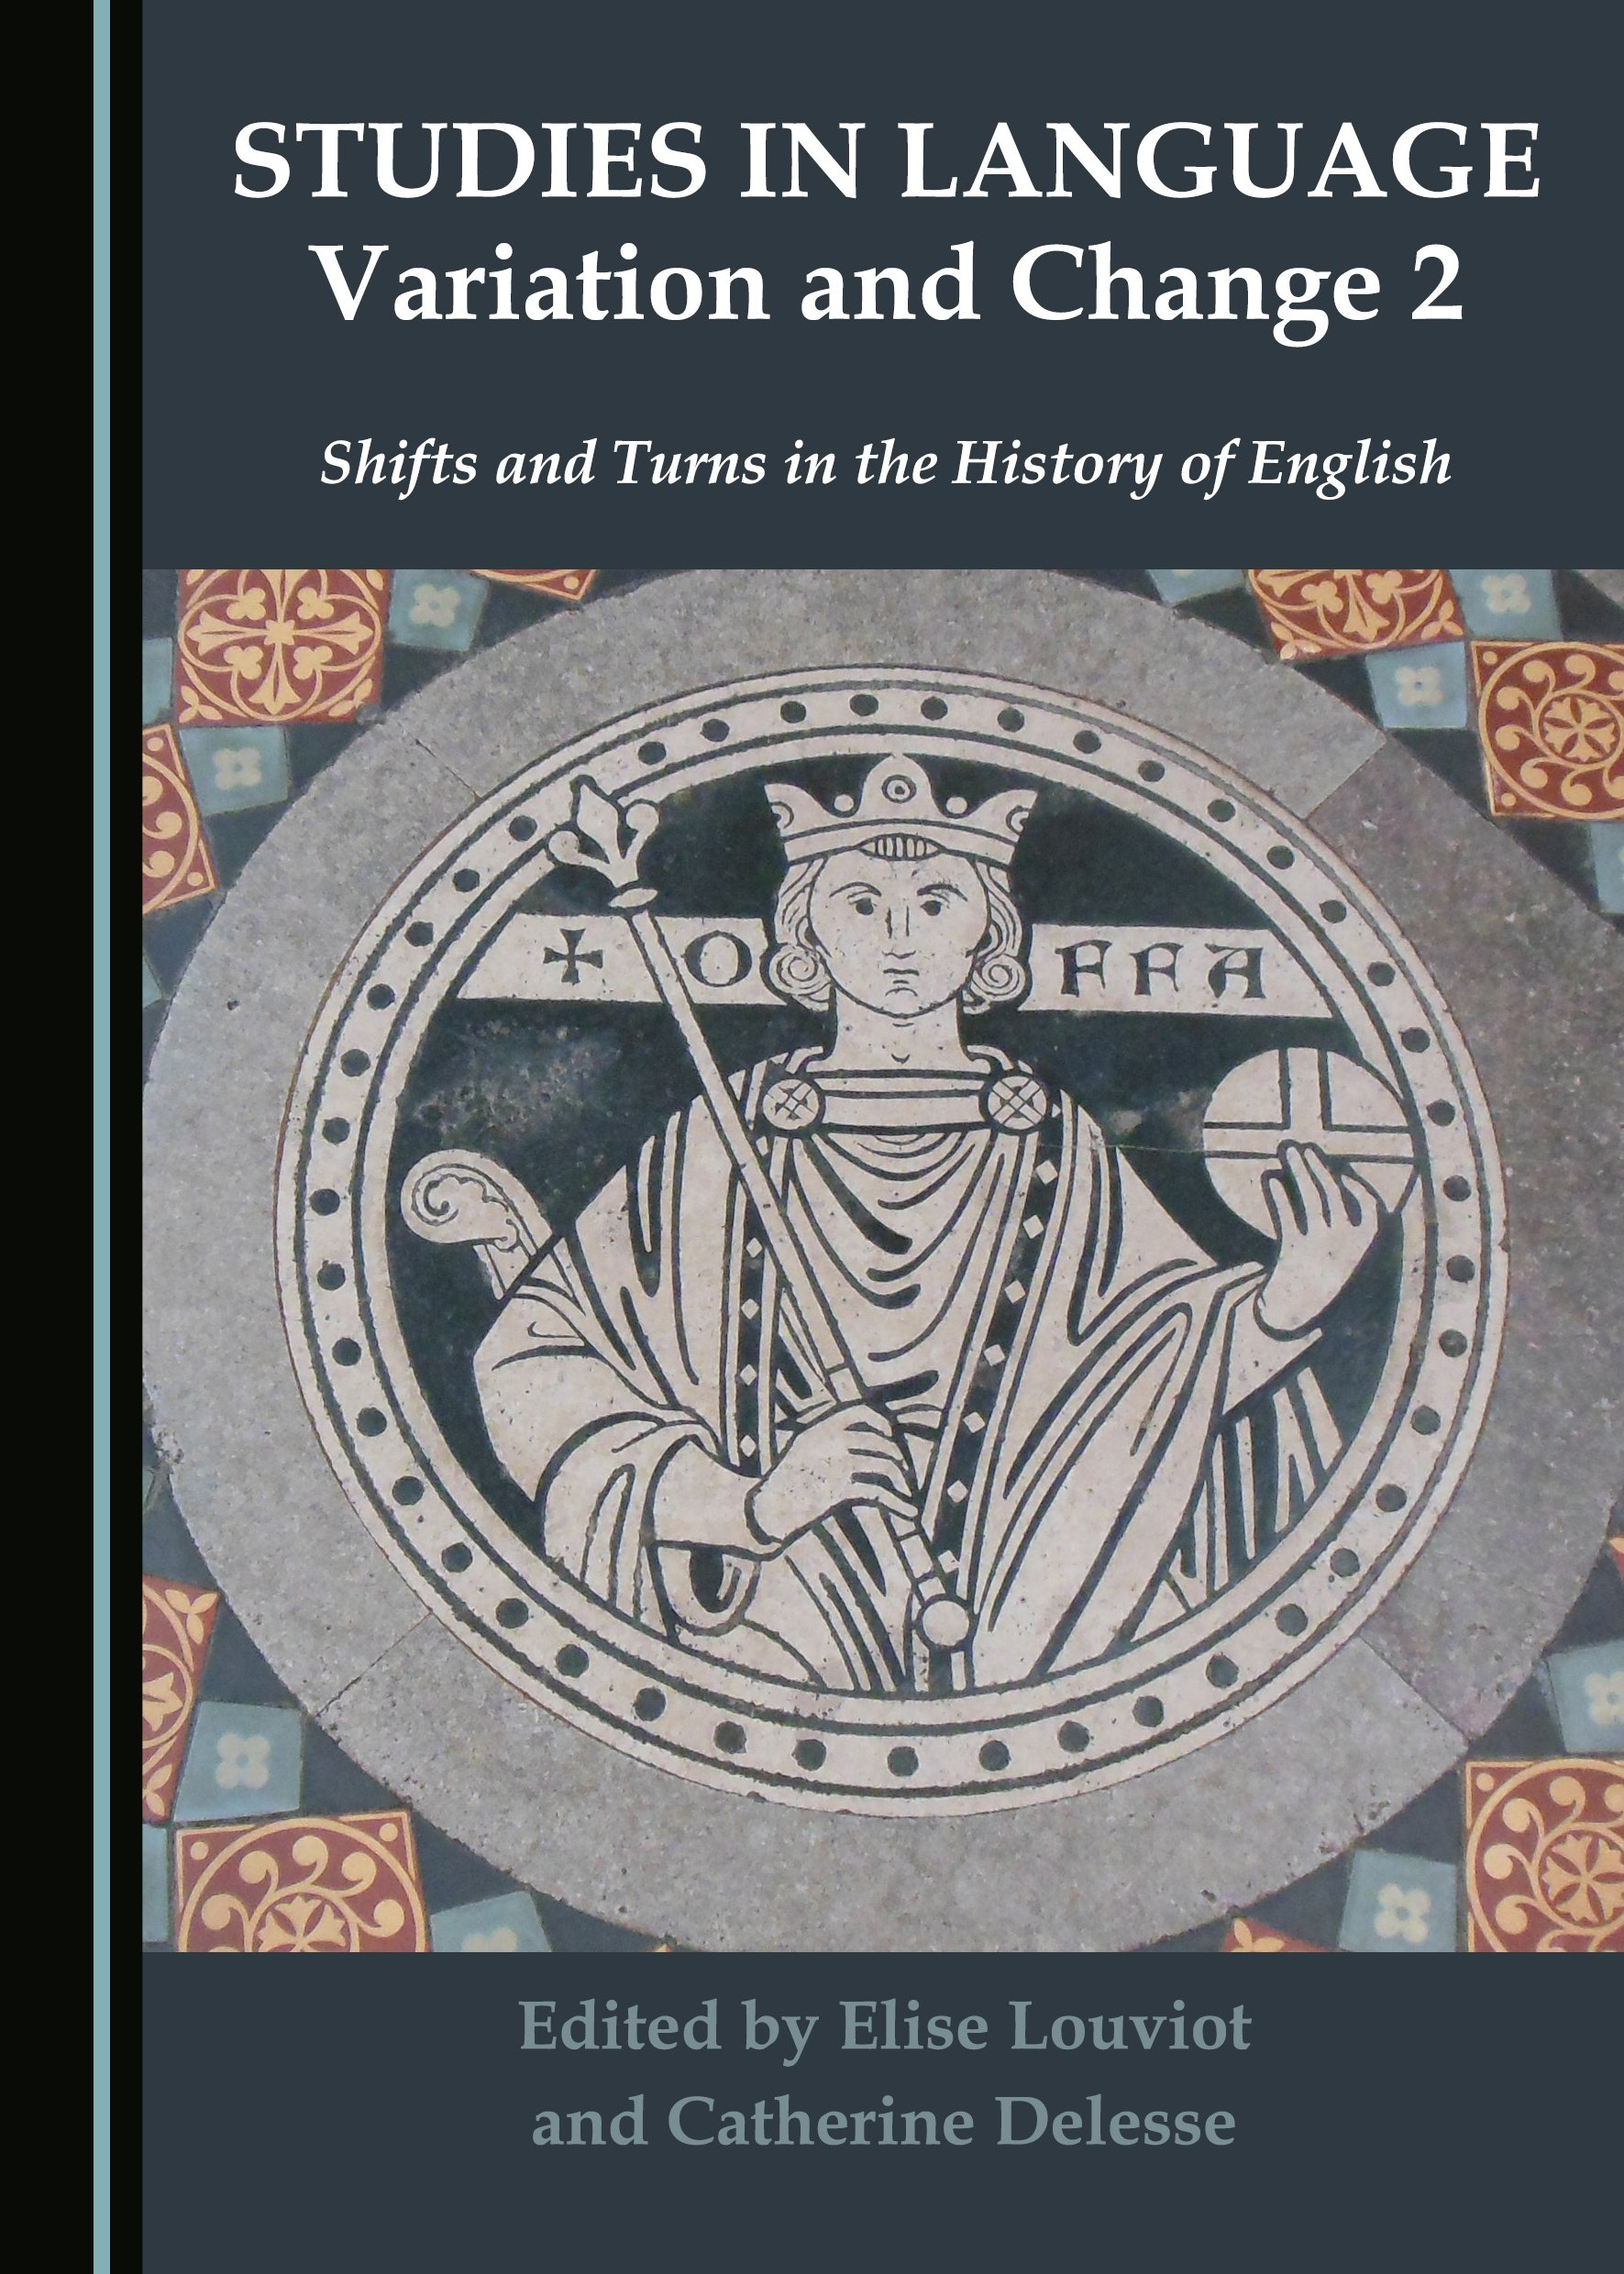 Studies in Language Variation and Change 2: Shifts and Turns in the History of English